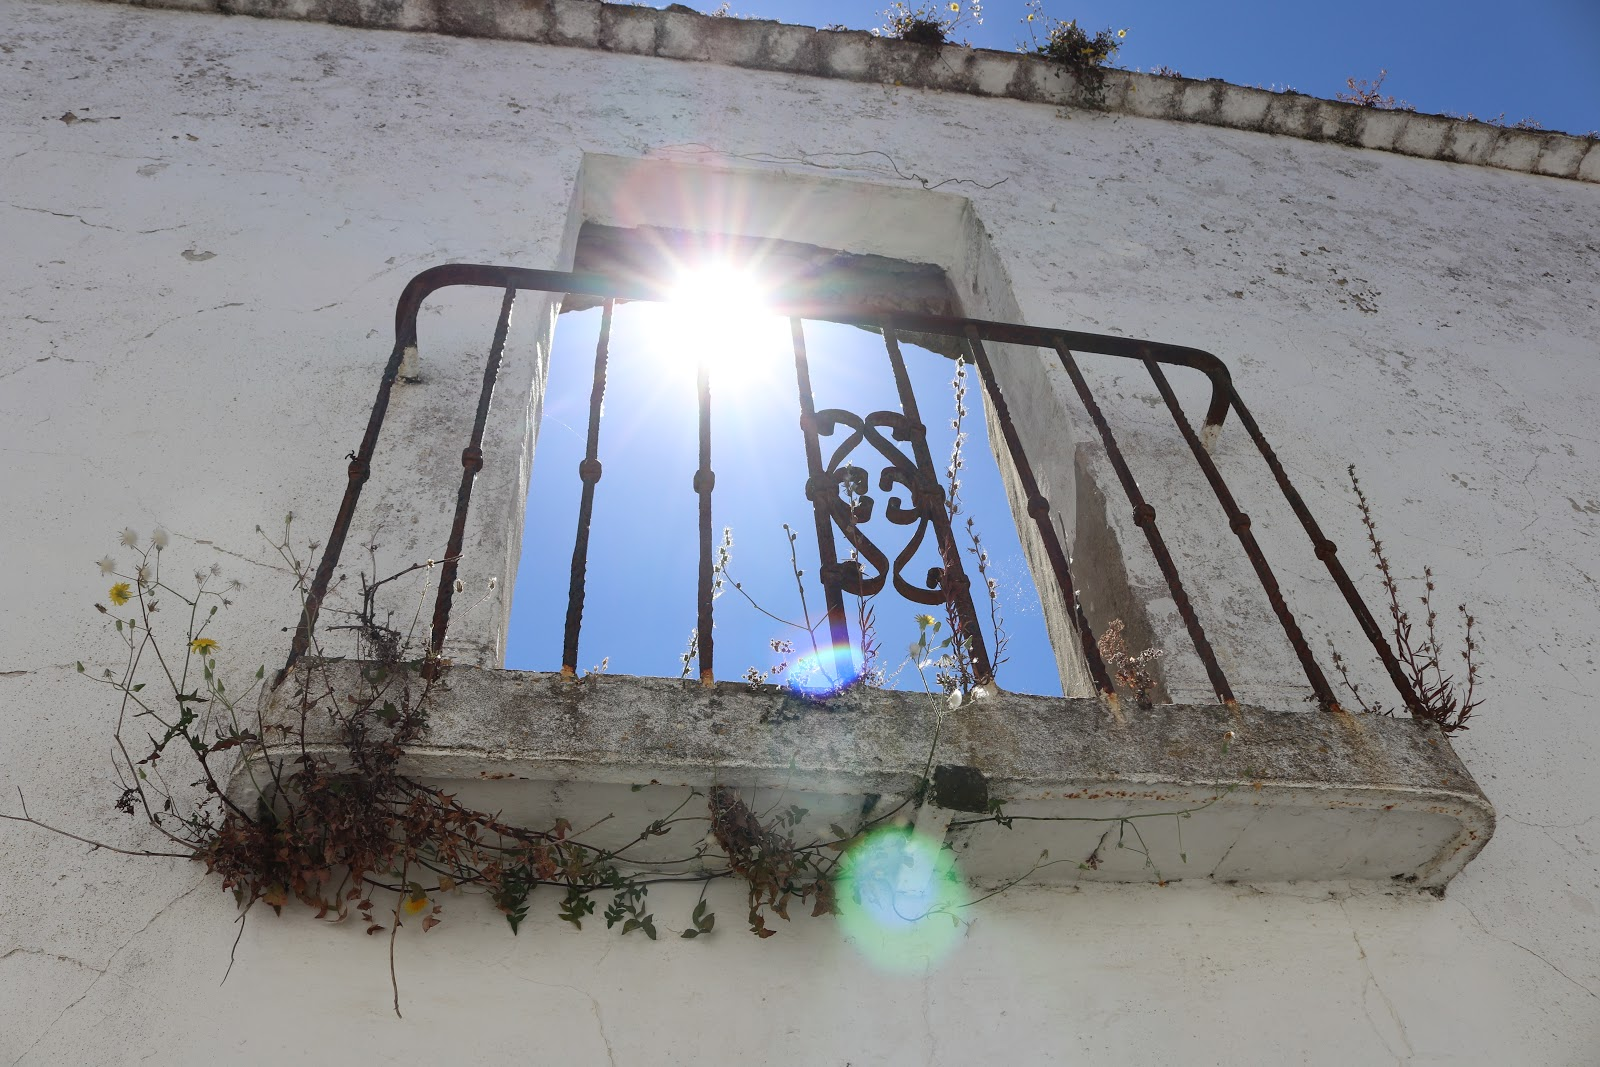 Sun streaming through a balcony in Spain